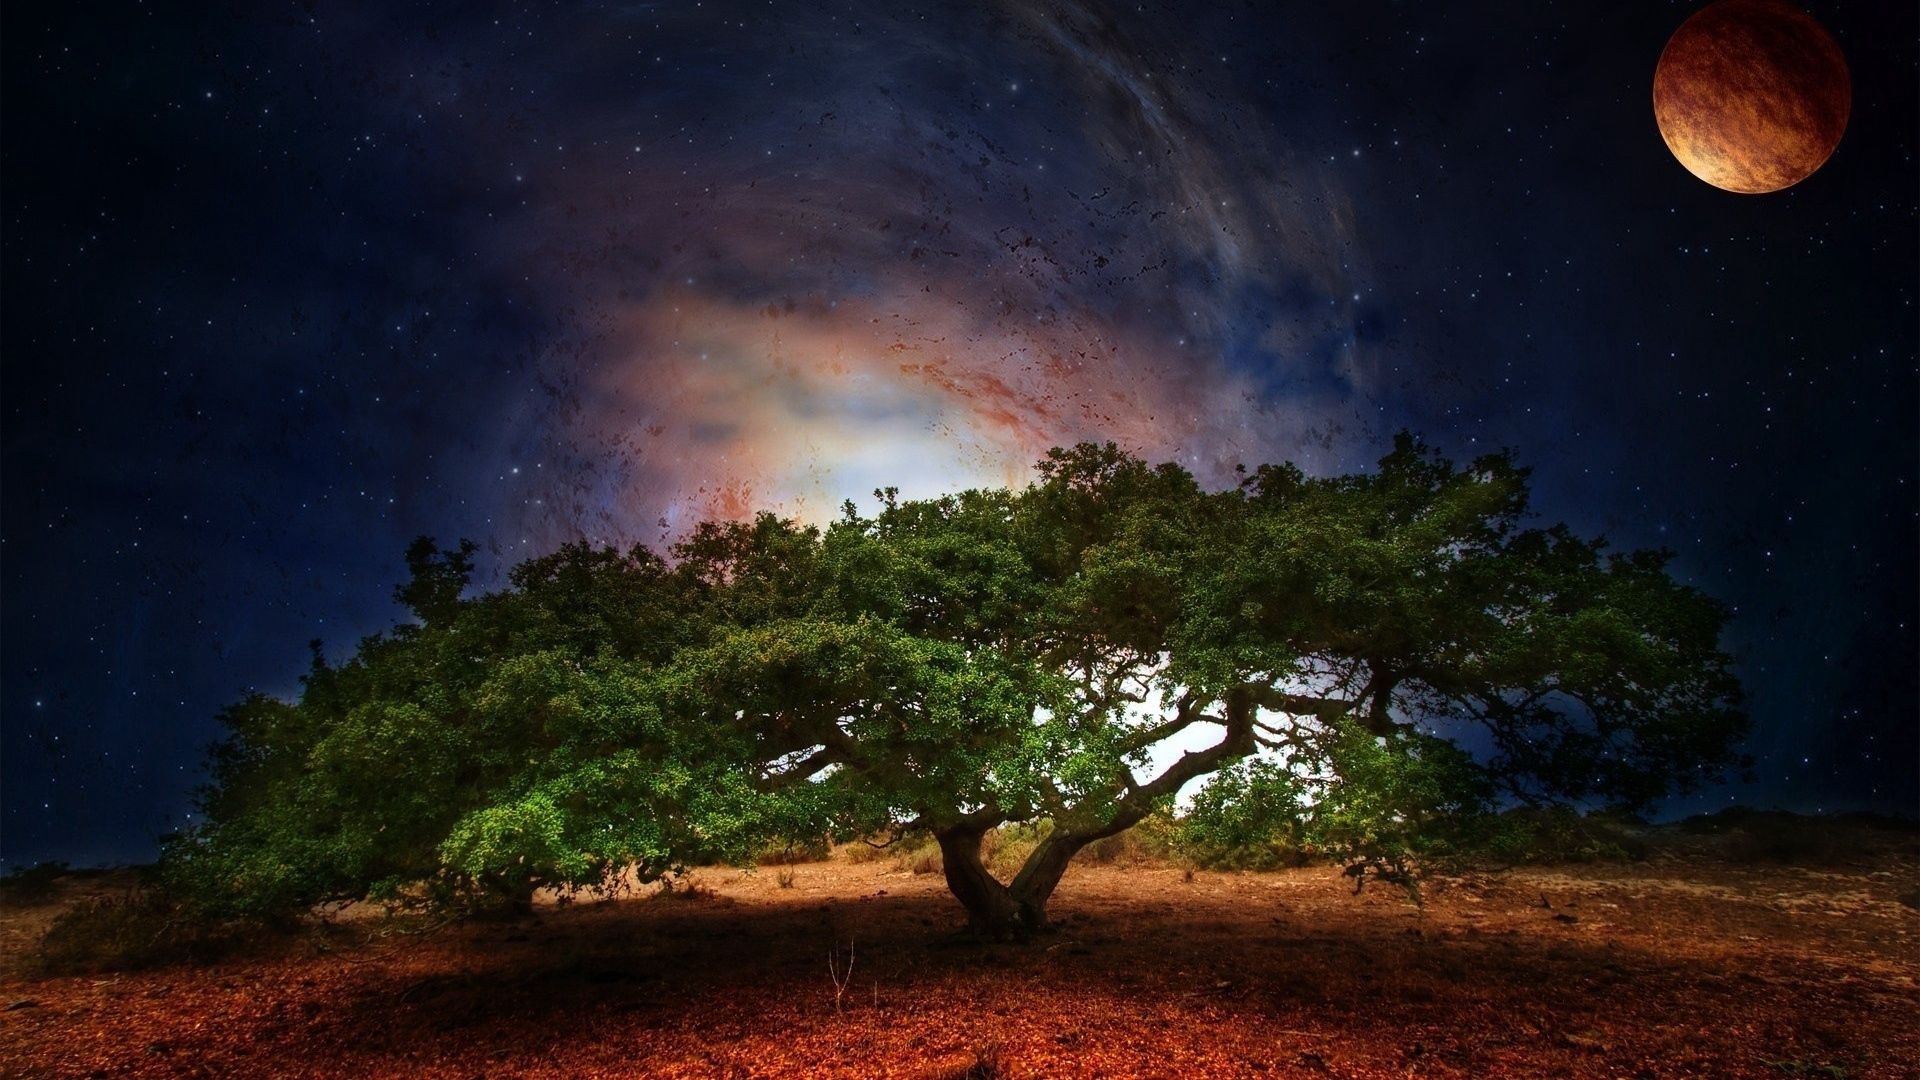 Wallpaper Planet, Green, Nature, Space, Leaves, Tree - Nature Wallpaper Hd Space , HD Wallpaper & Backgrounds